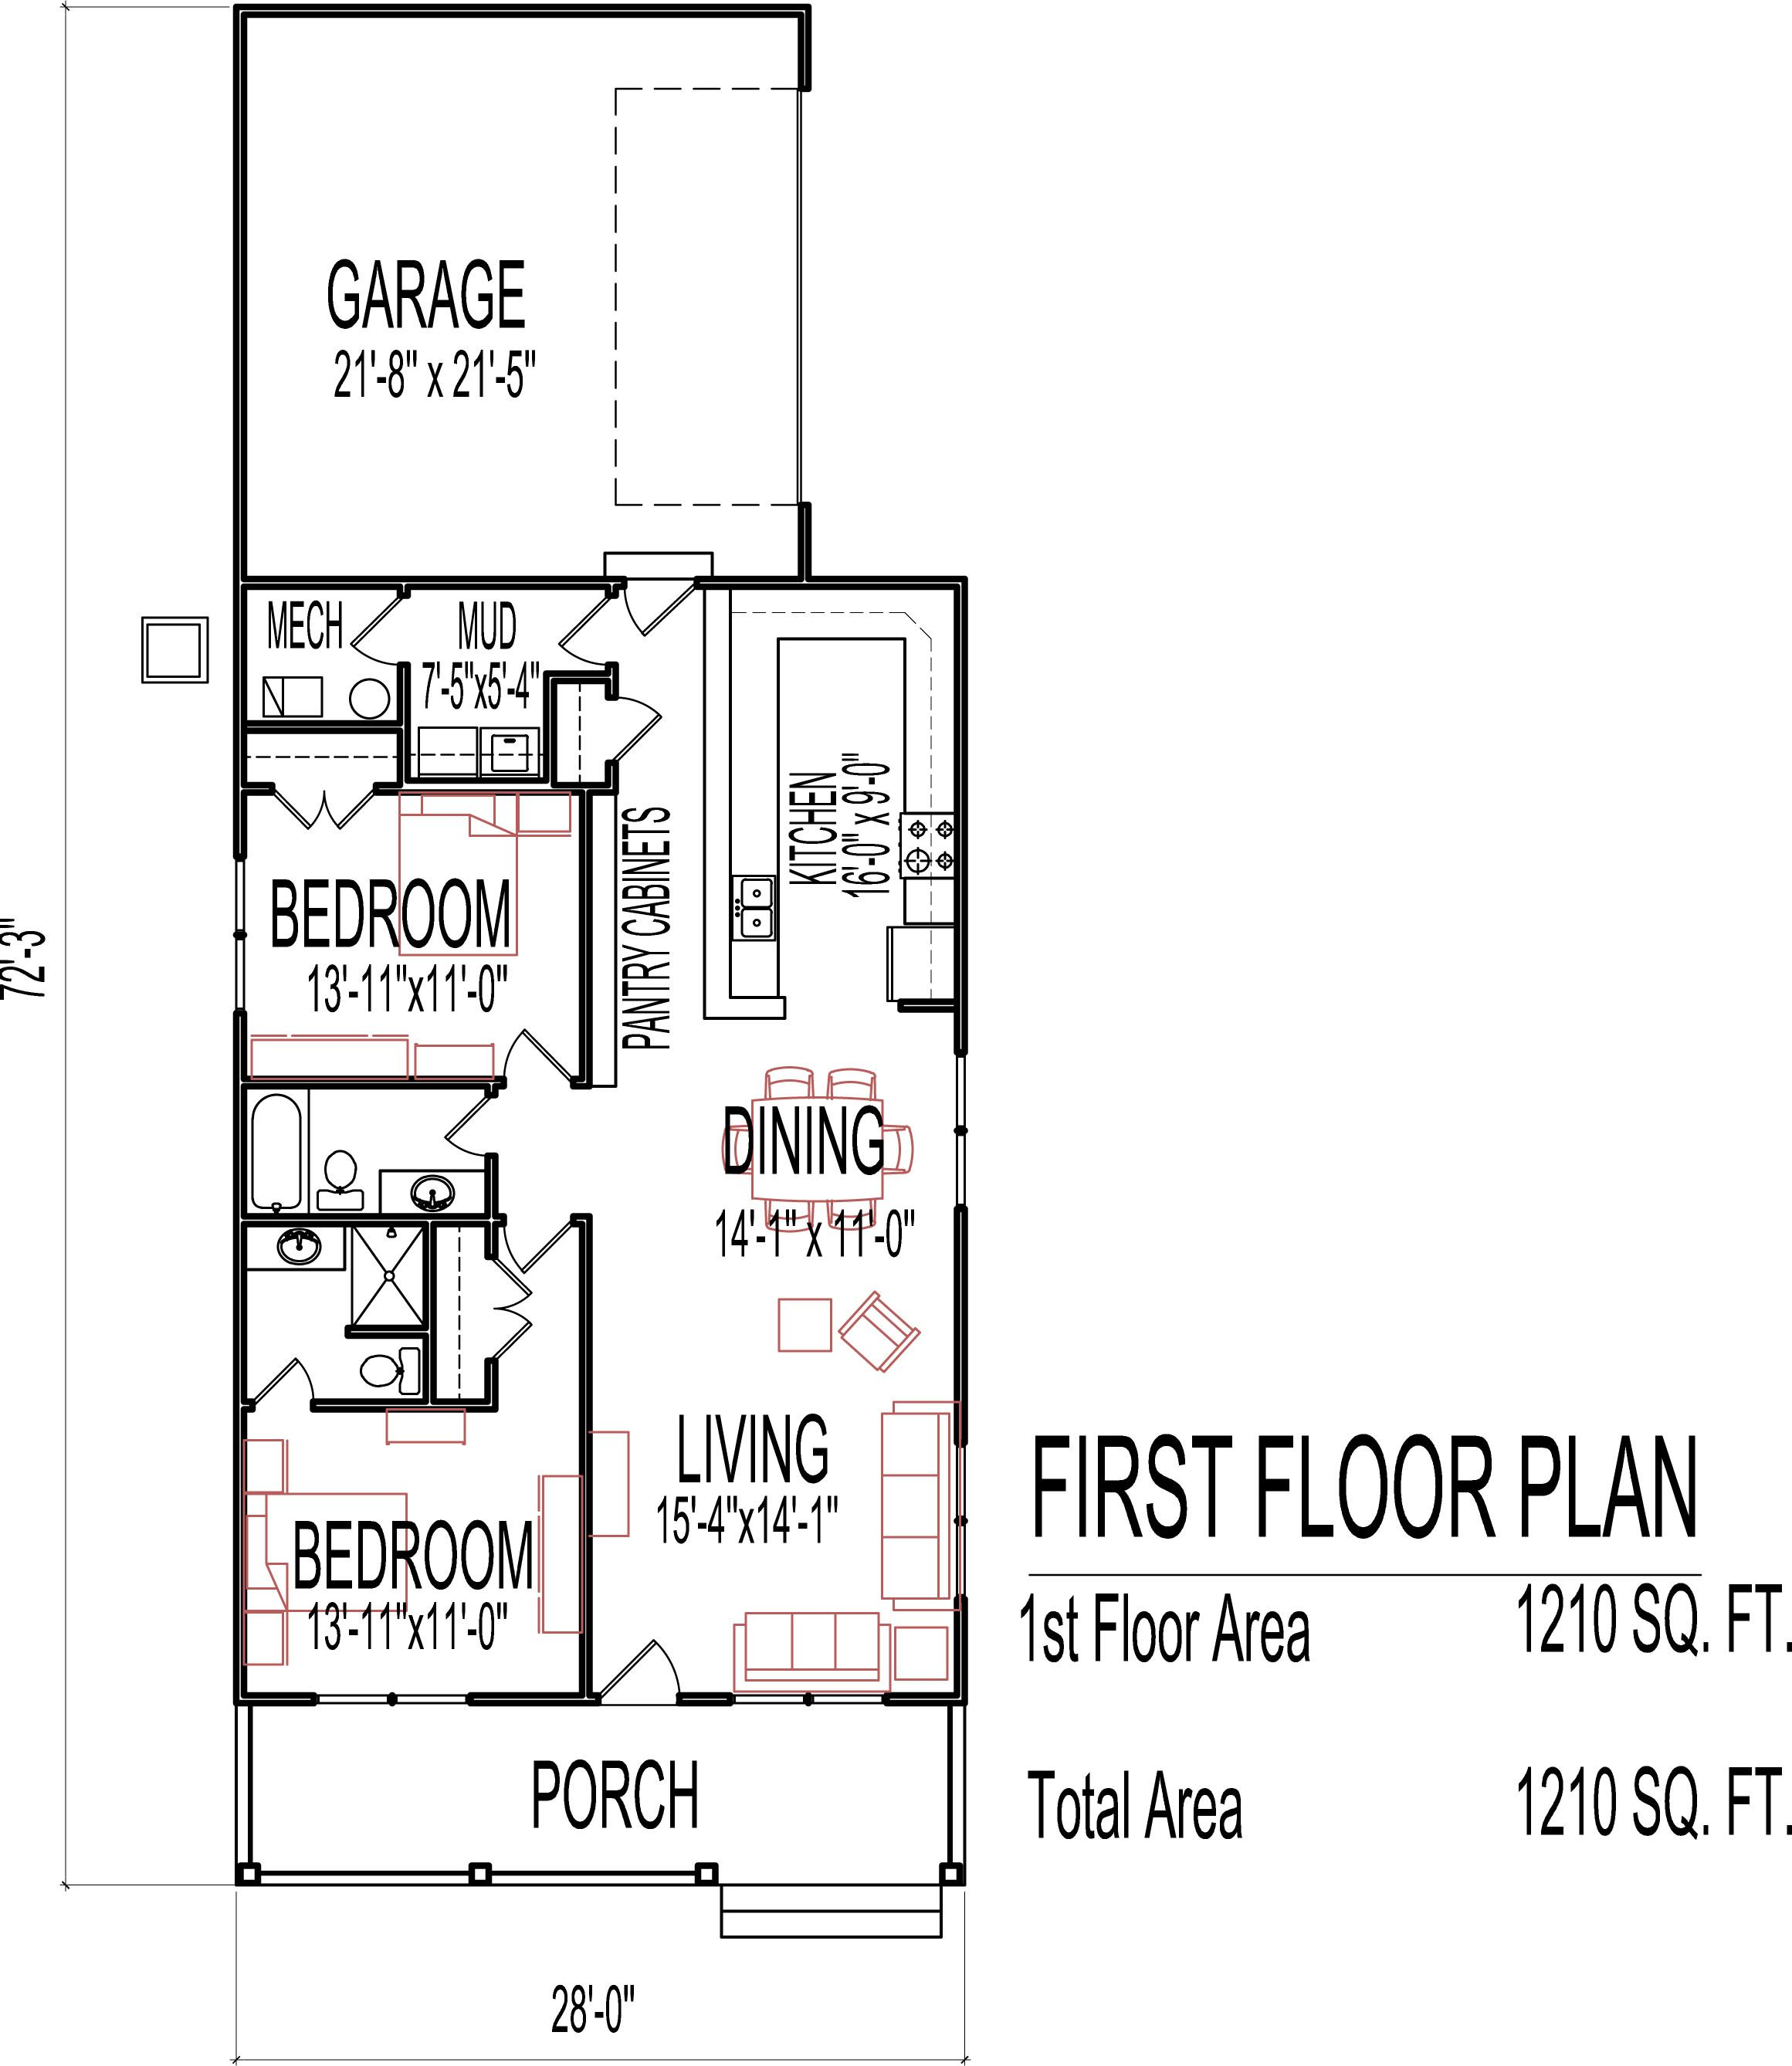 small low cost economical 2 bedroom 2 bath 1200 sq ft single story house floor plans - Small Home Plans